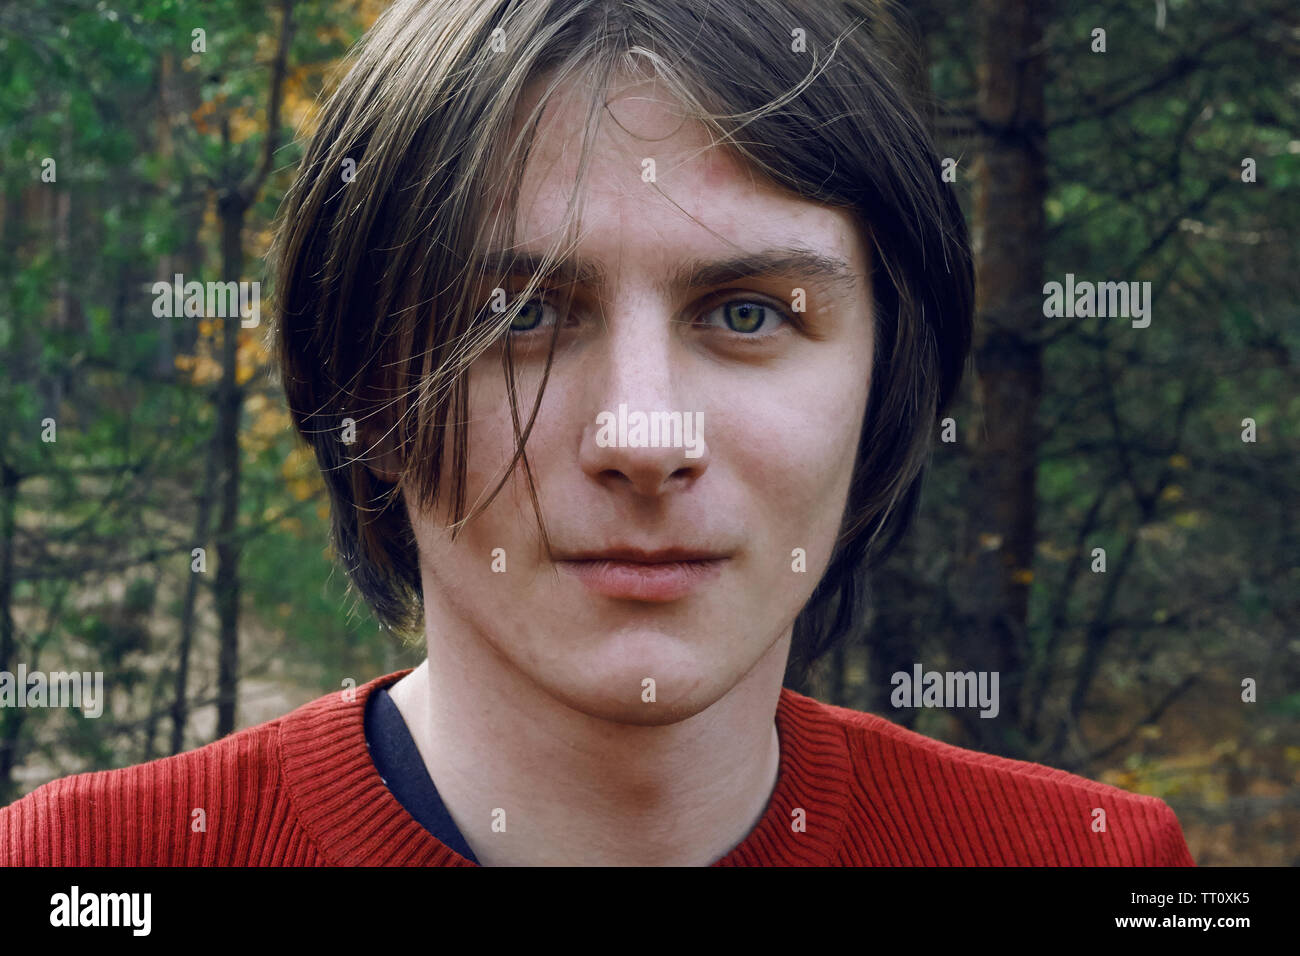 A handsome guy with long tousled hair and green eyes stands in the middle of the autumn forest - Stock Image